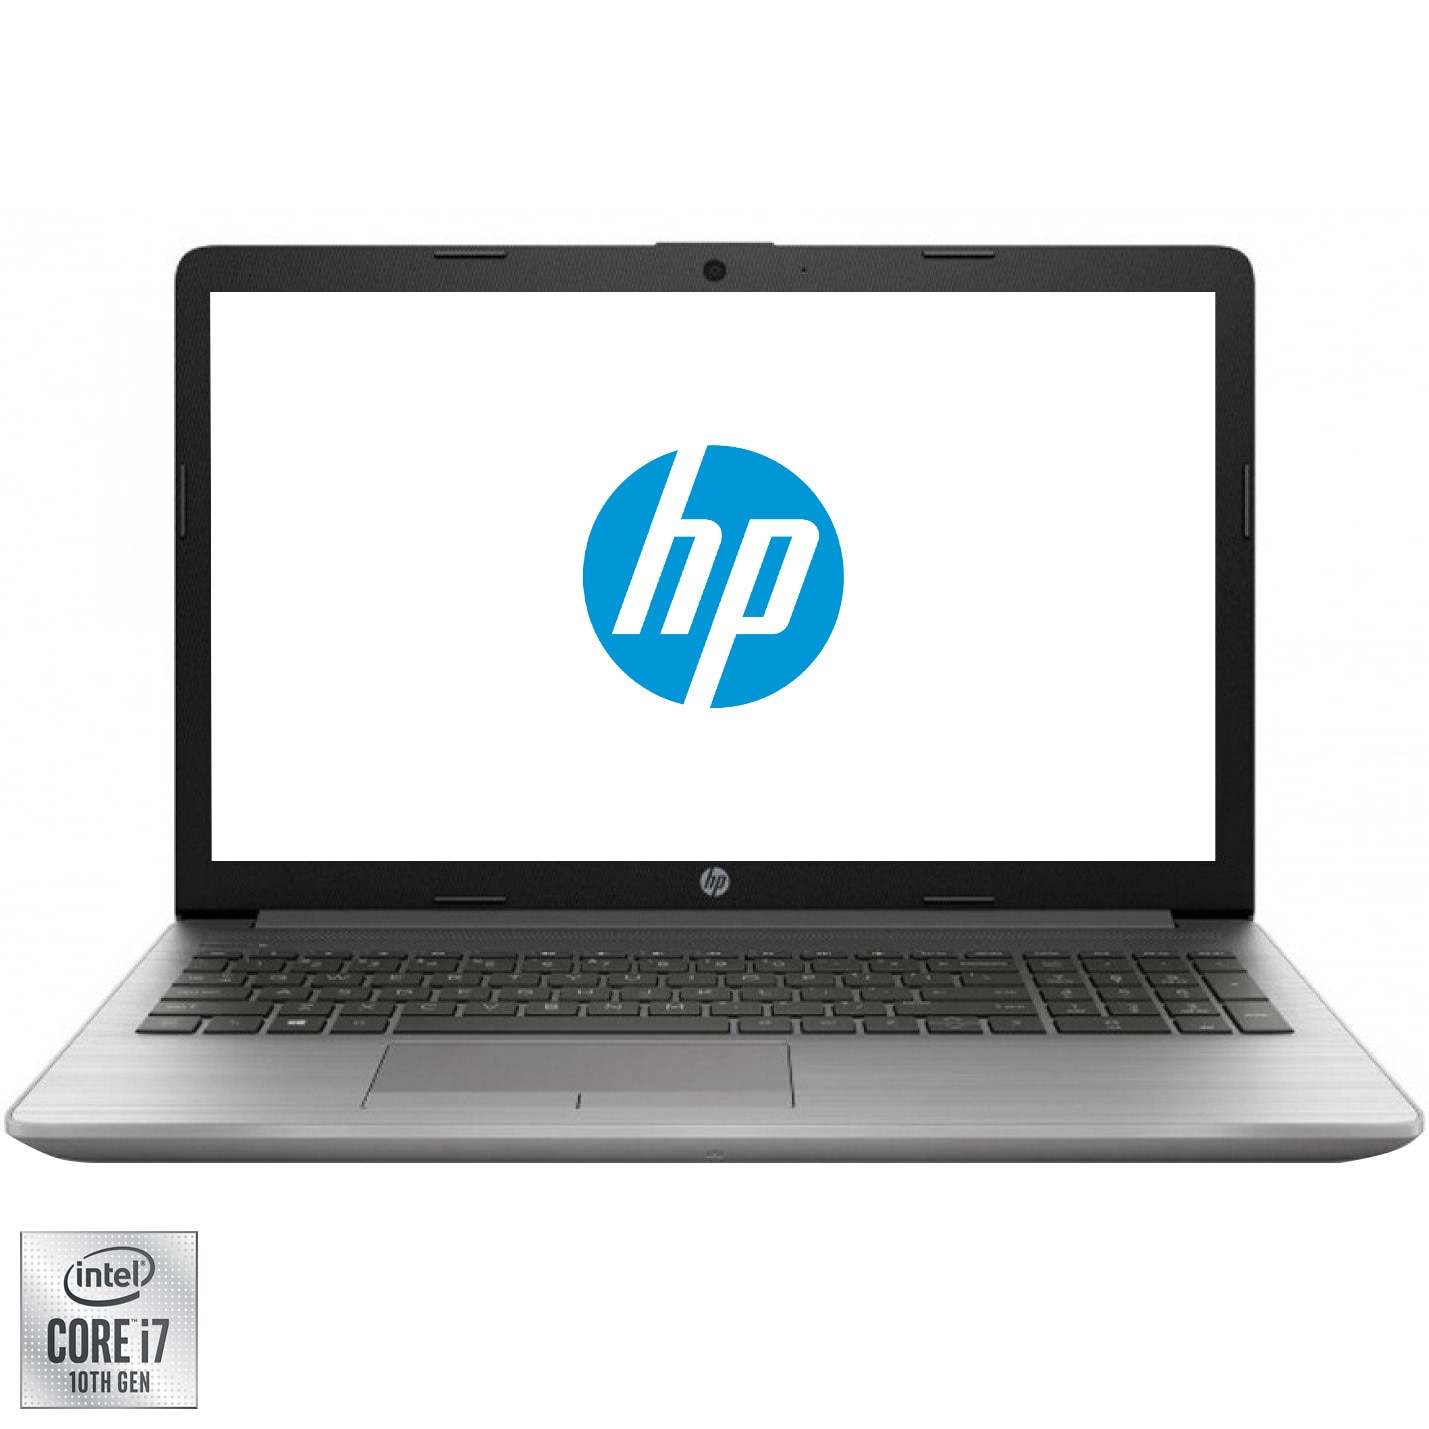 "Fotografie Laptop HP 250 G7 cu procesor Intel Core i7-1065G7 pana la 3.90 GHz, 15.6"", Full HD, 8GB, 256GB SSD, Intel UHD Graphics, Free DOS, Silver"